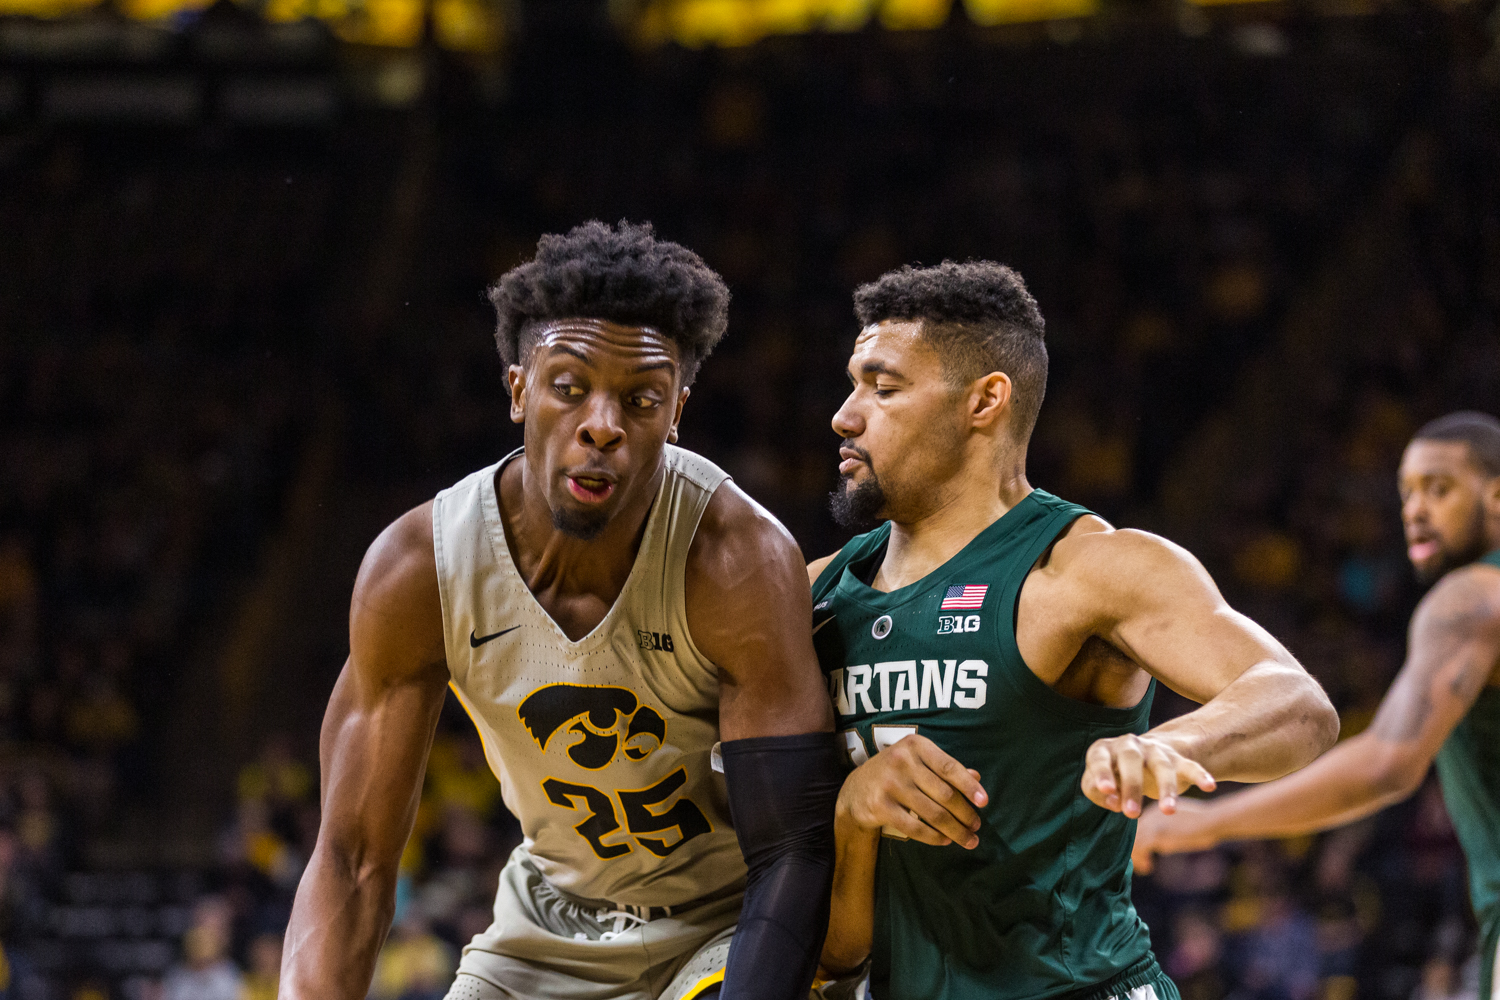 Iowa forward Tyler Cook #25 and Michigan State forward Kenny Goins #25 fight for the ball during a basketball game against Michigan State on Thursday, Jan. 24, 2019. The Spartans defeated the Hawkeyes 82-67.